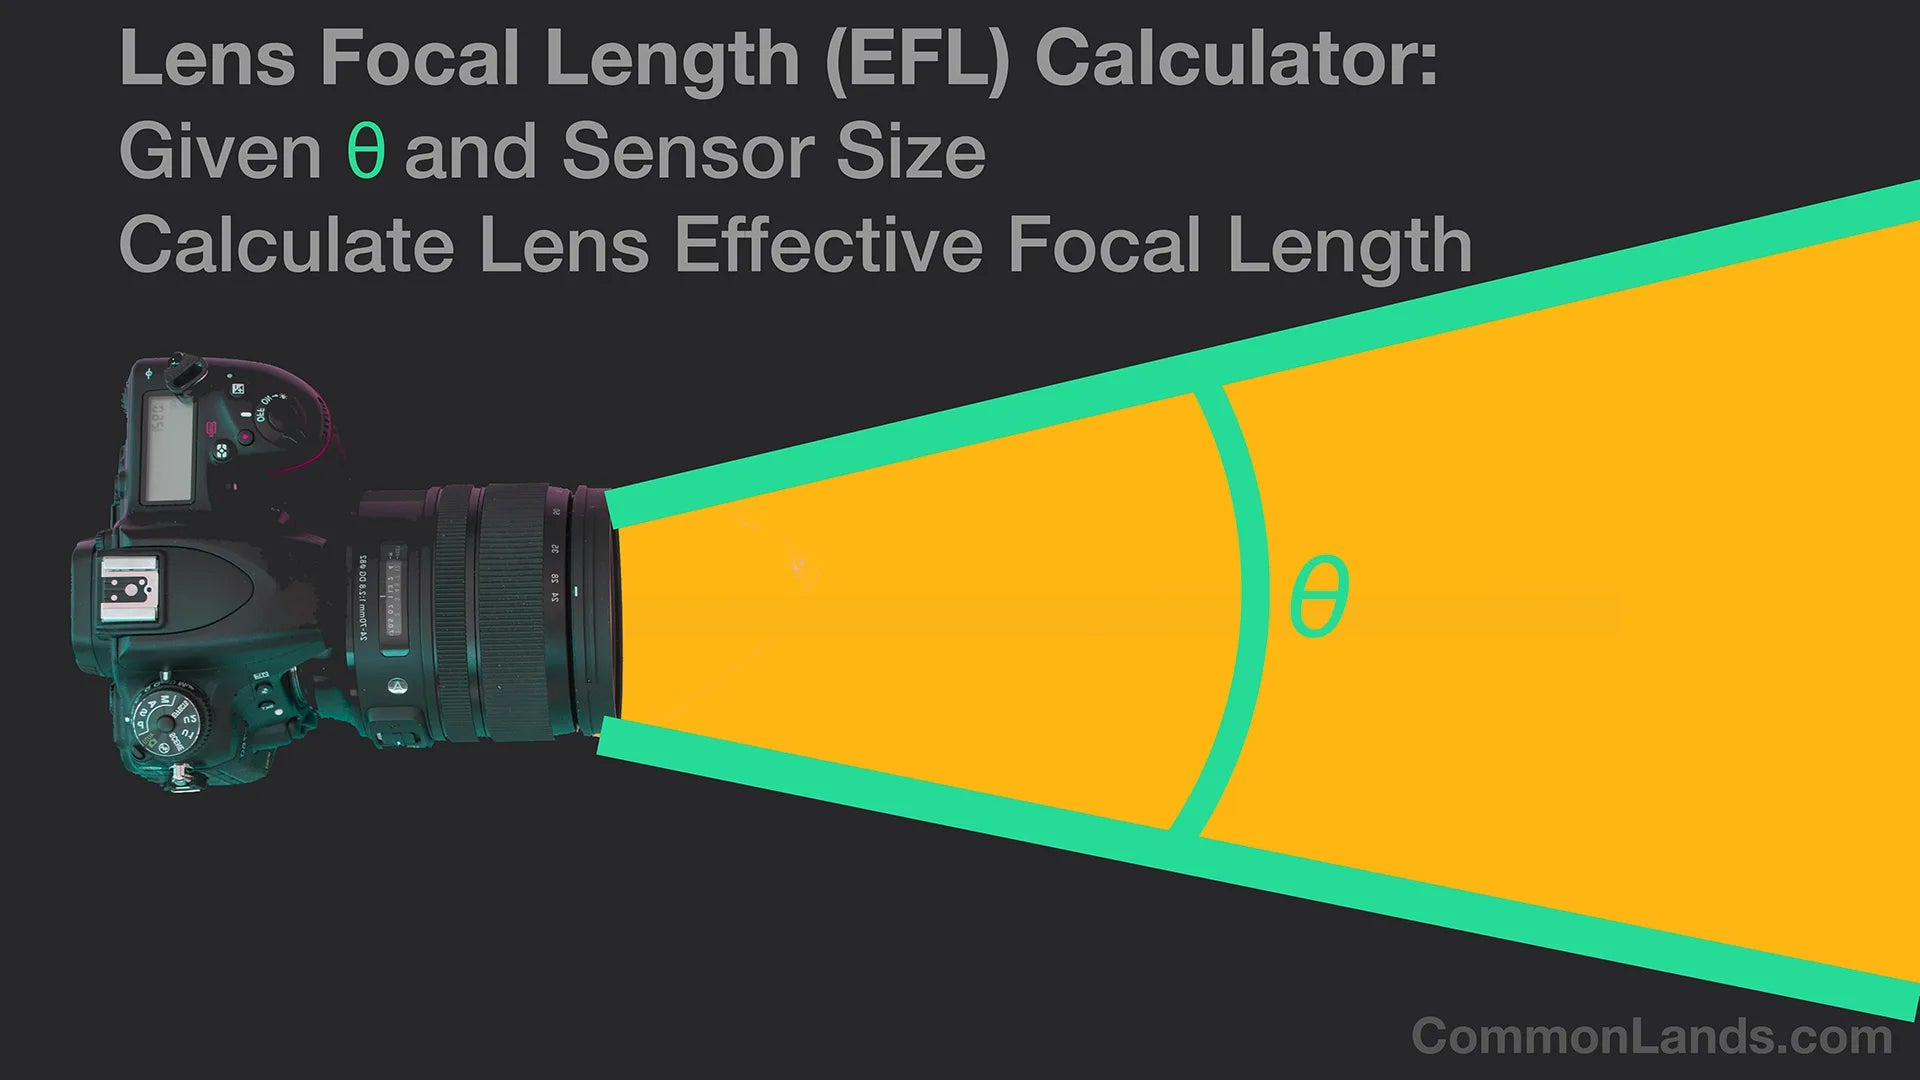 Lens Focal Length Calculator. EFL Calculator.